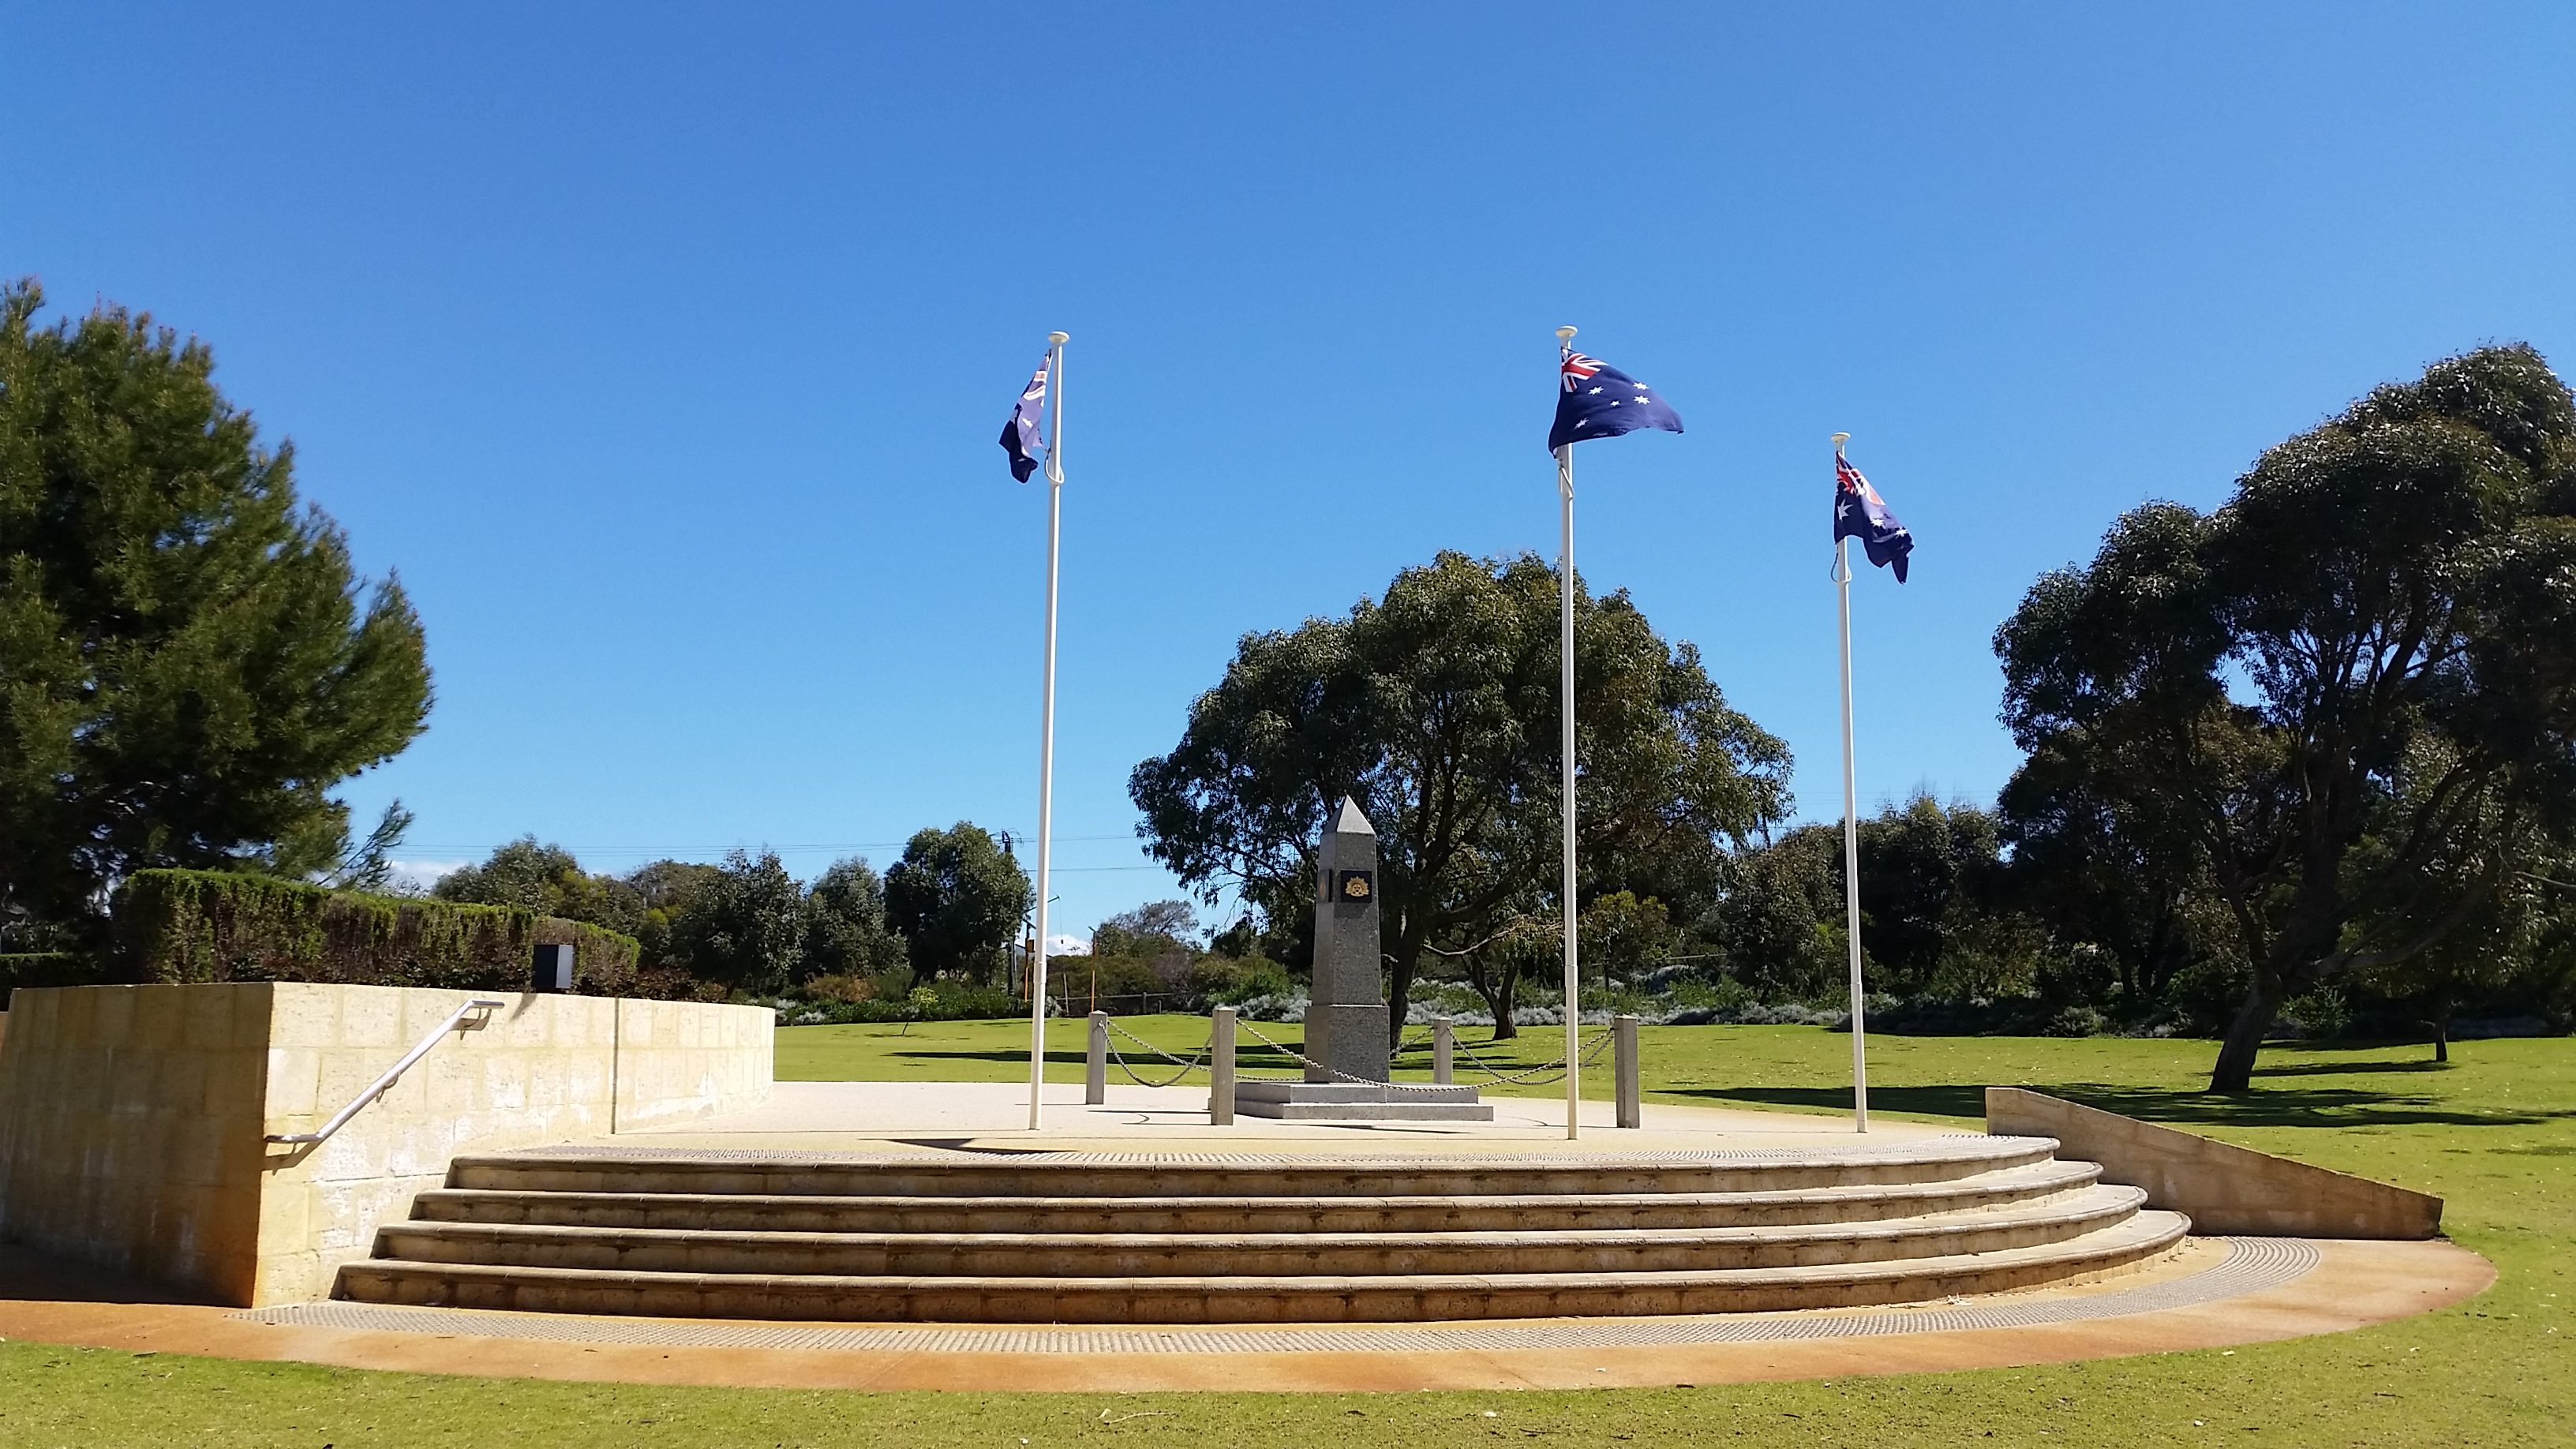 A war memorial located in an open park with large trees in the background and three flagpoles with Australian flags flying.